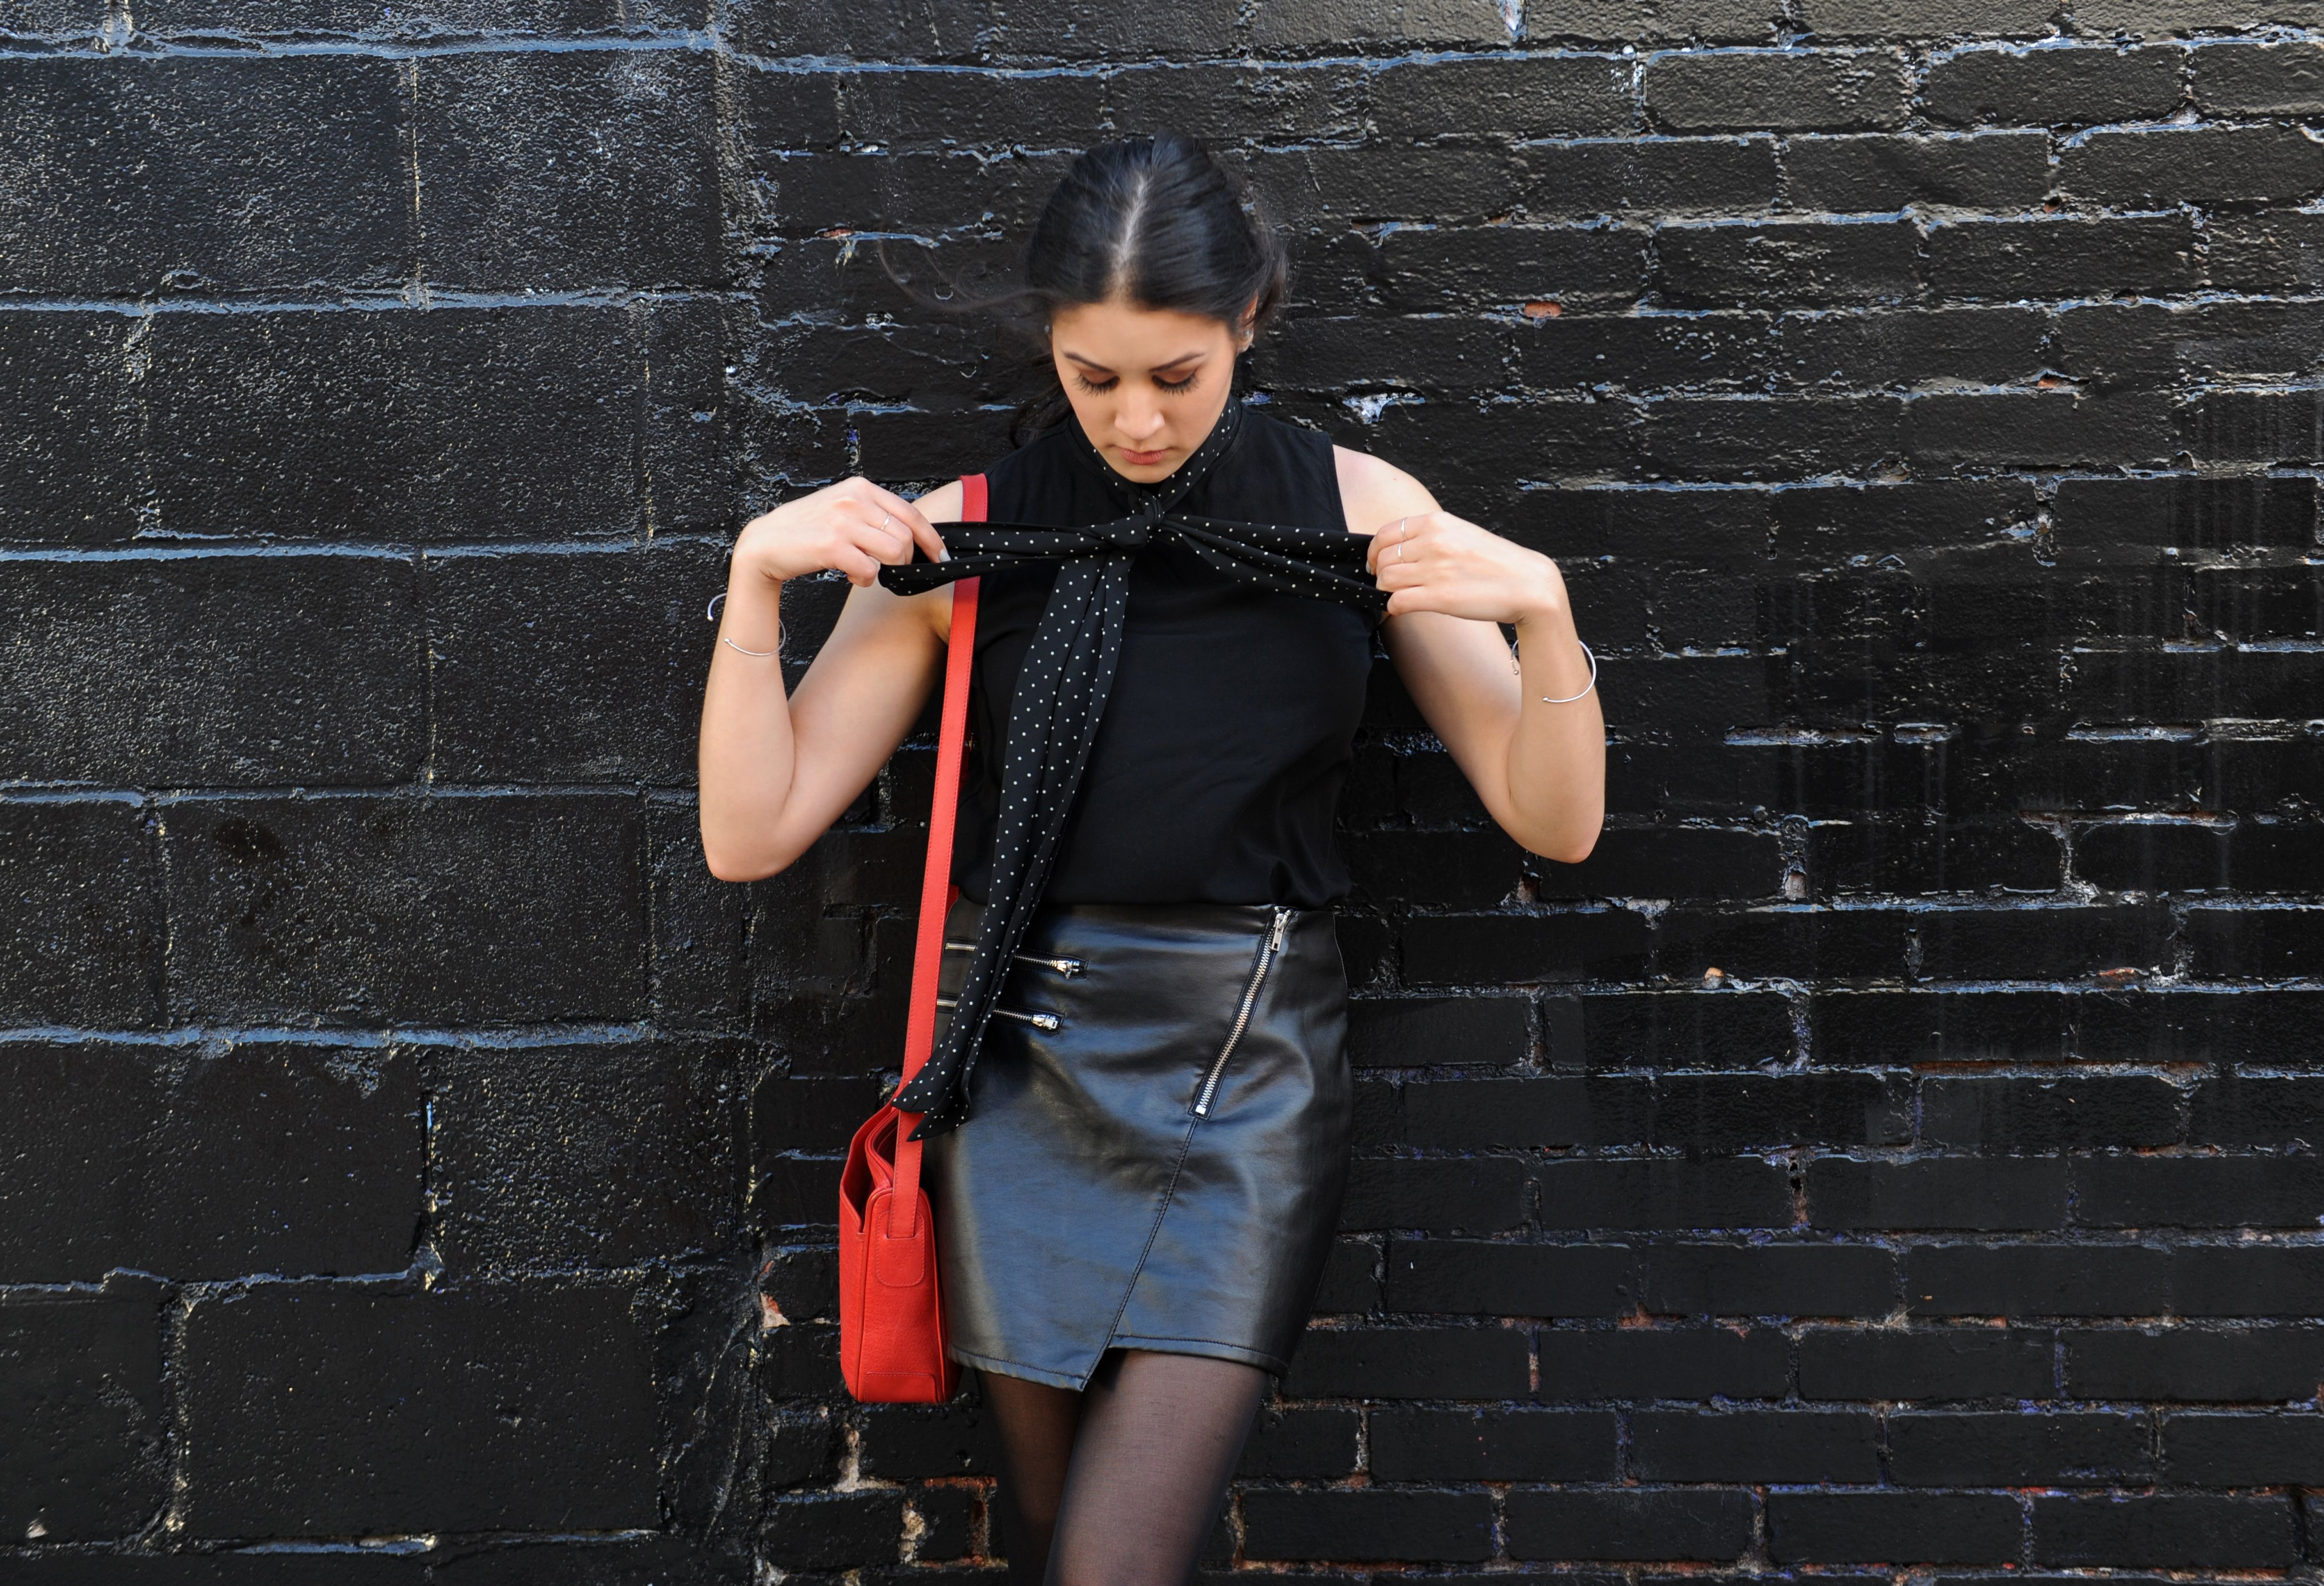 How I define my style - click to find out! #style #fashionblogger #blogger #allblack 5m